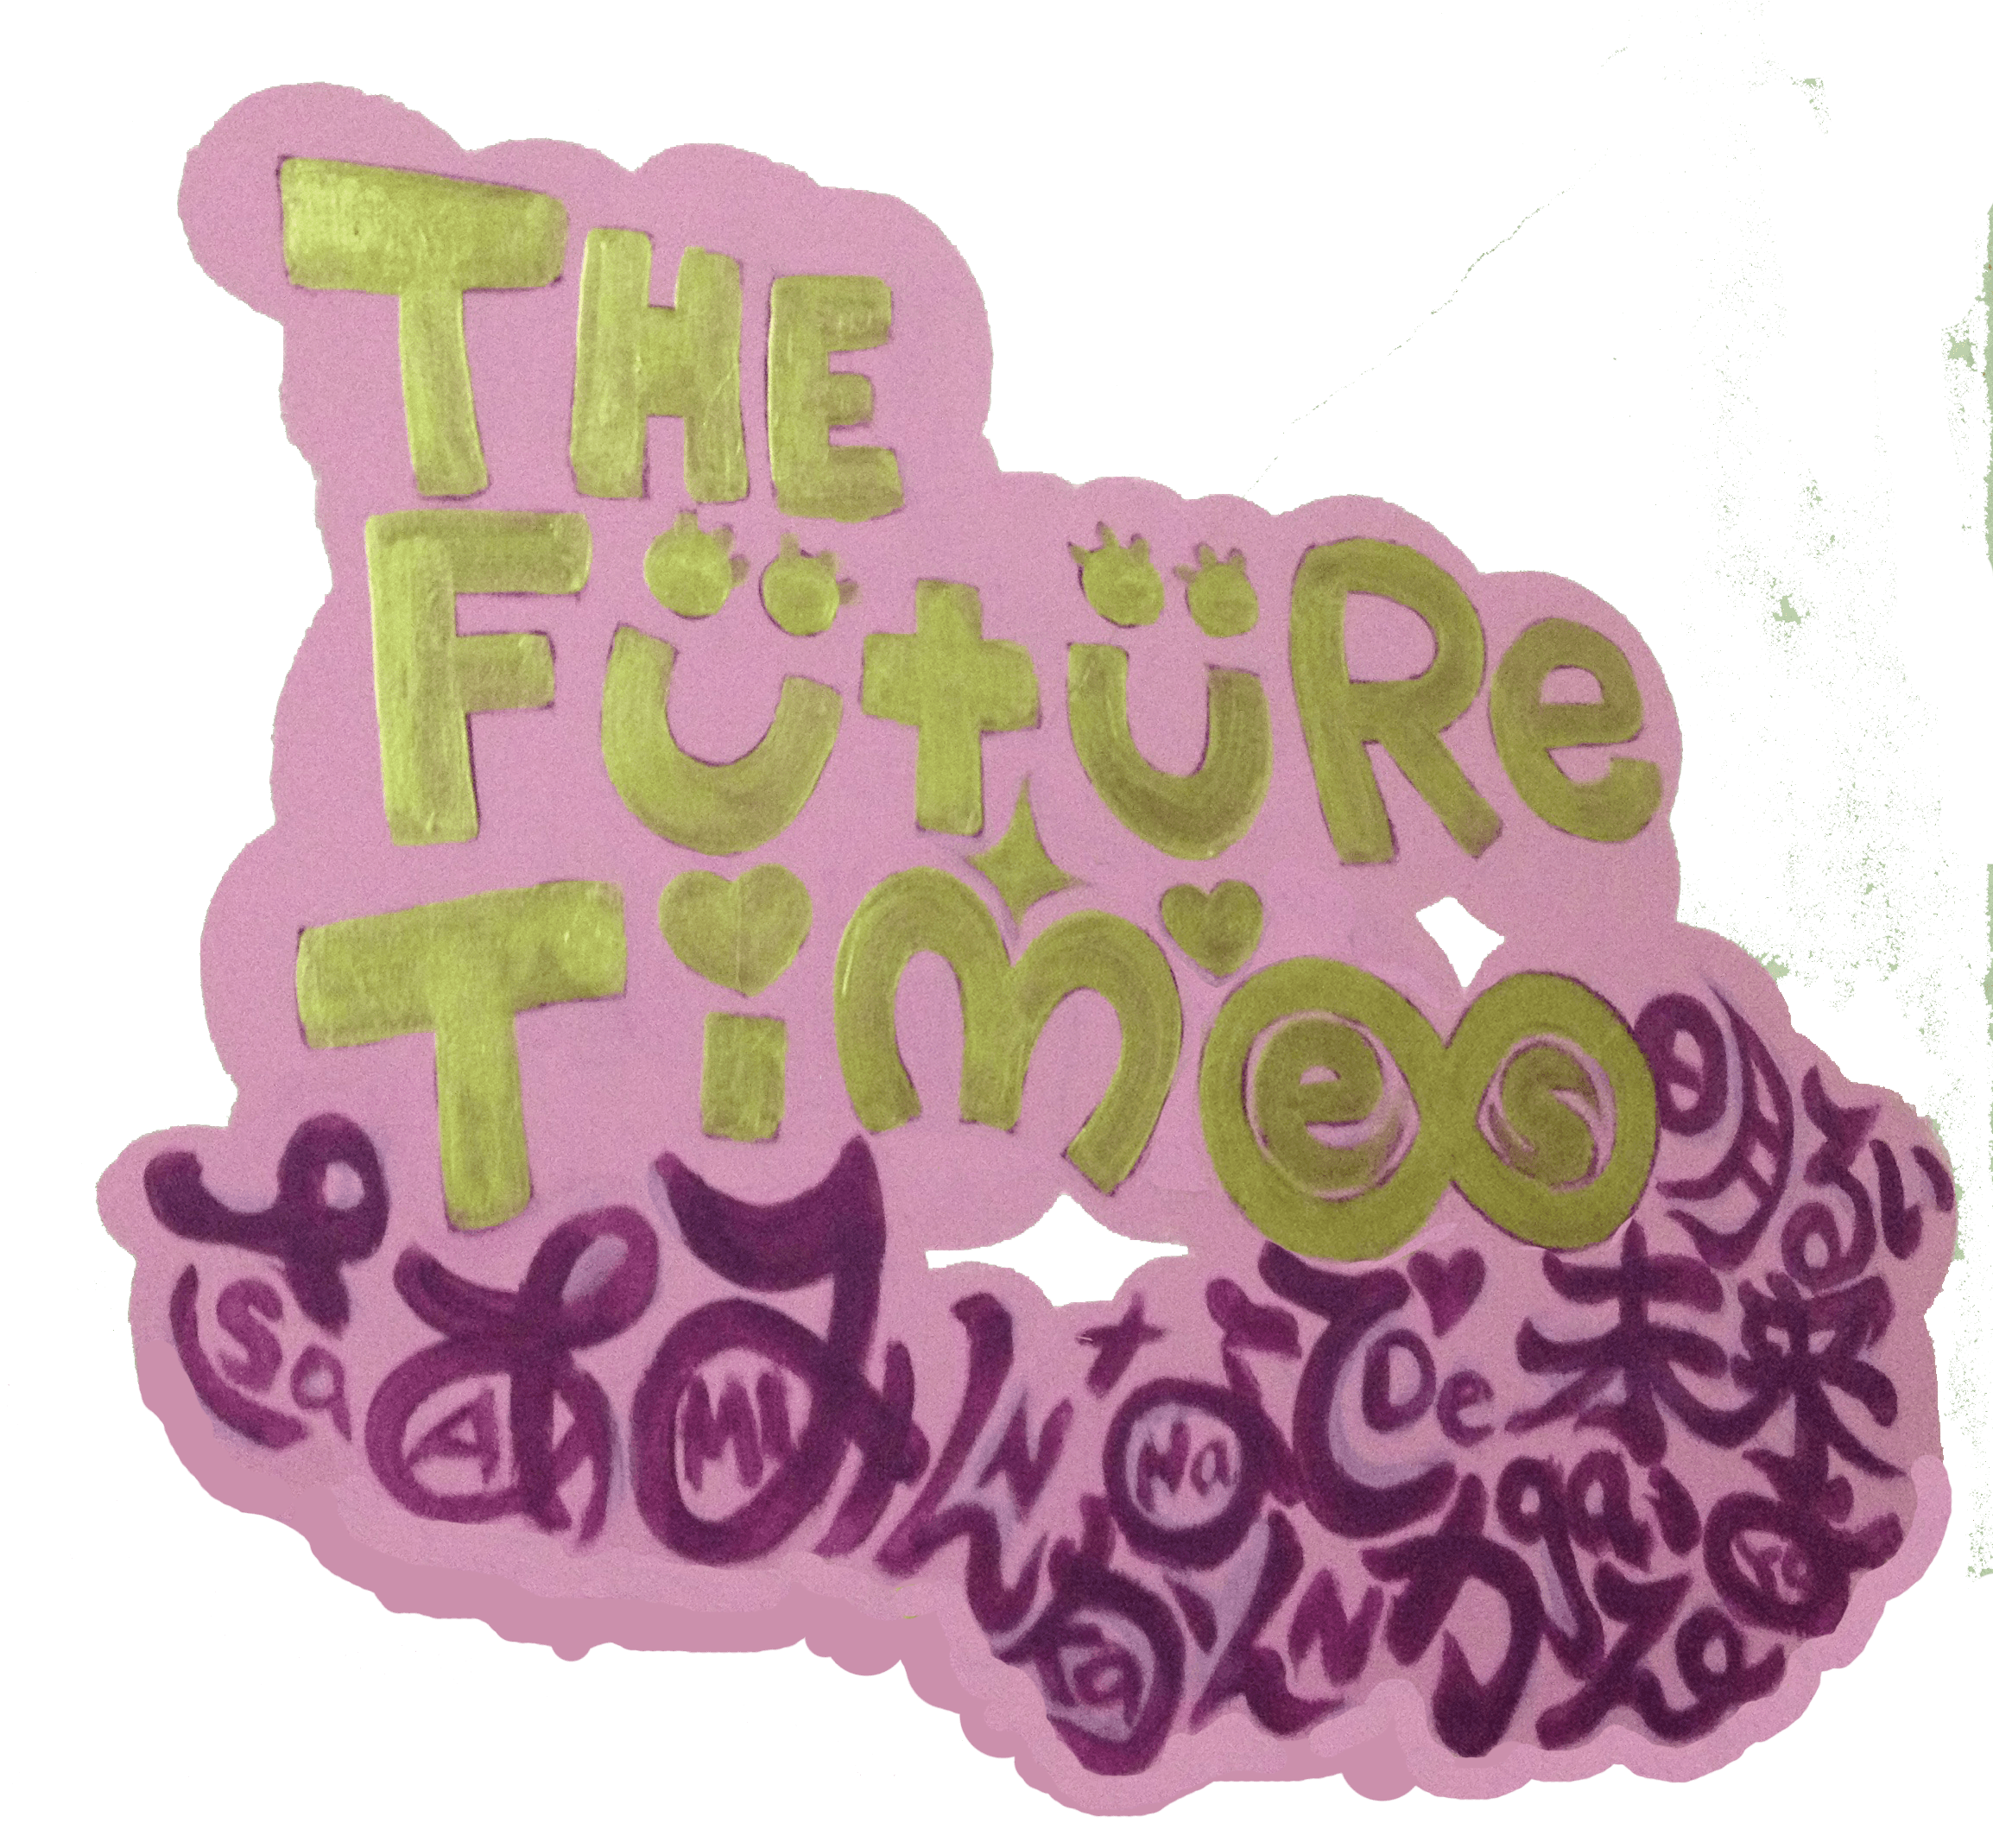 THE FUTURE TIMES